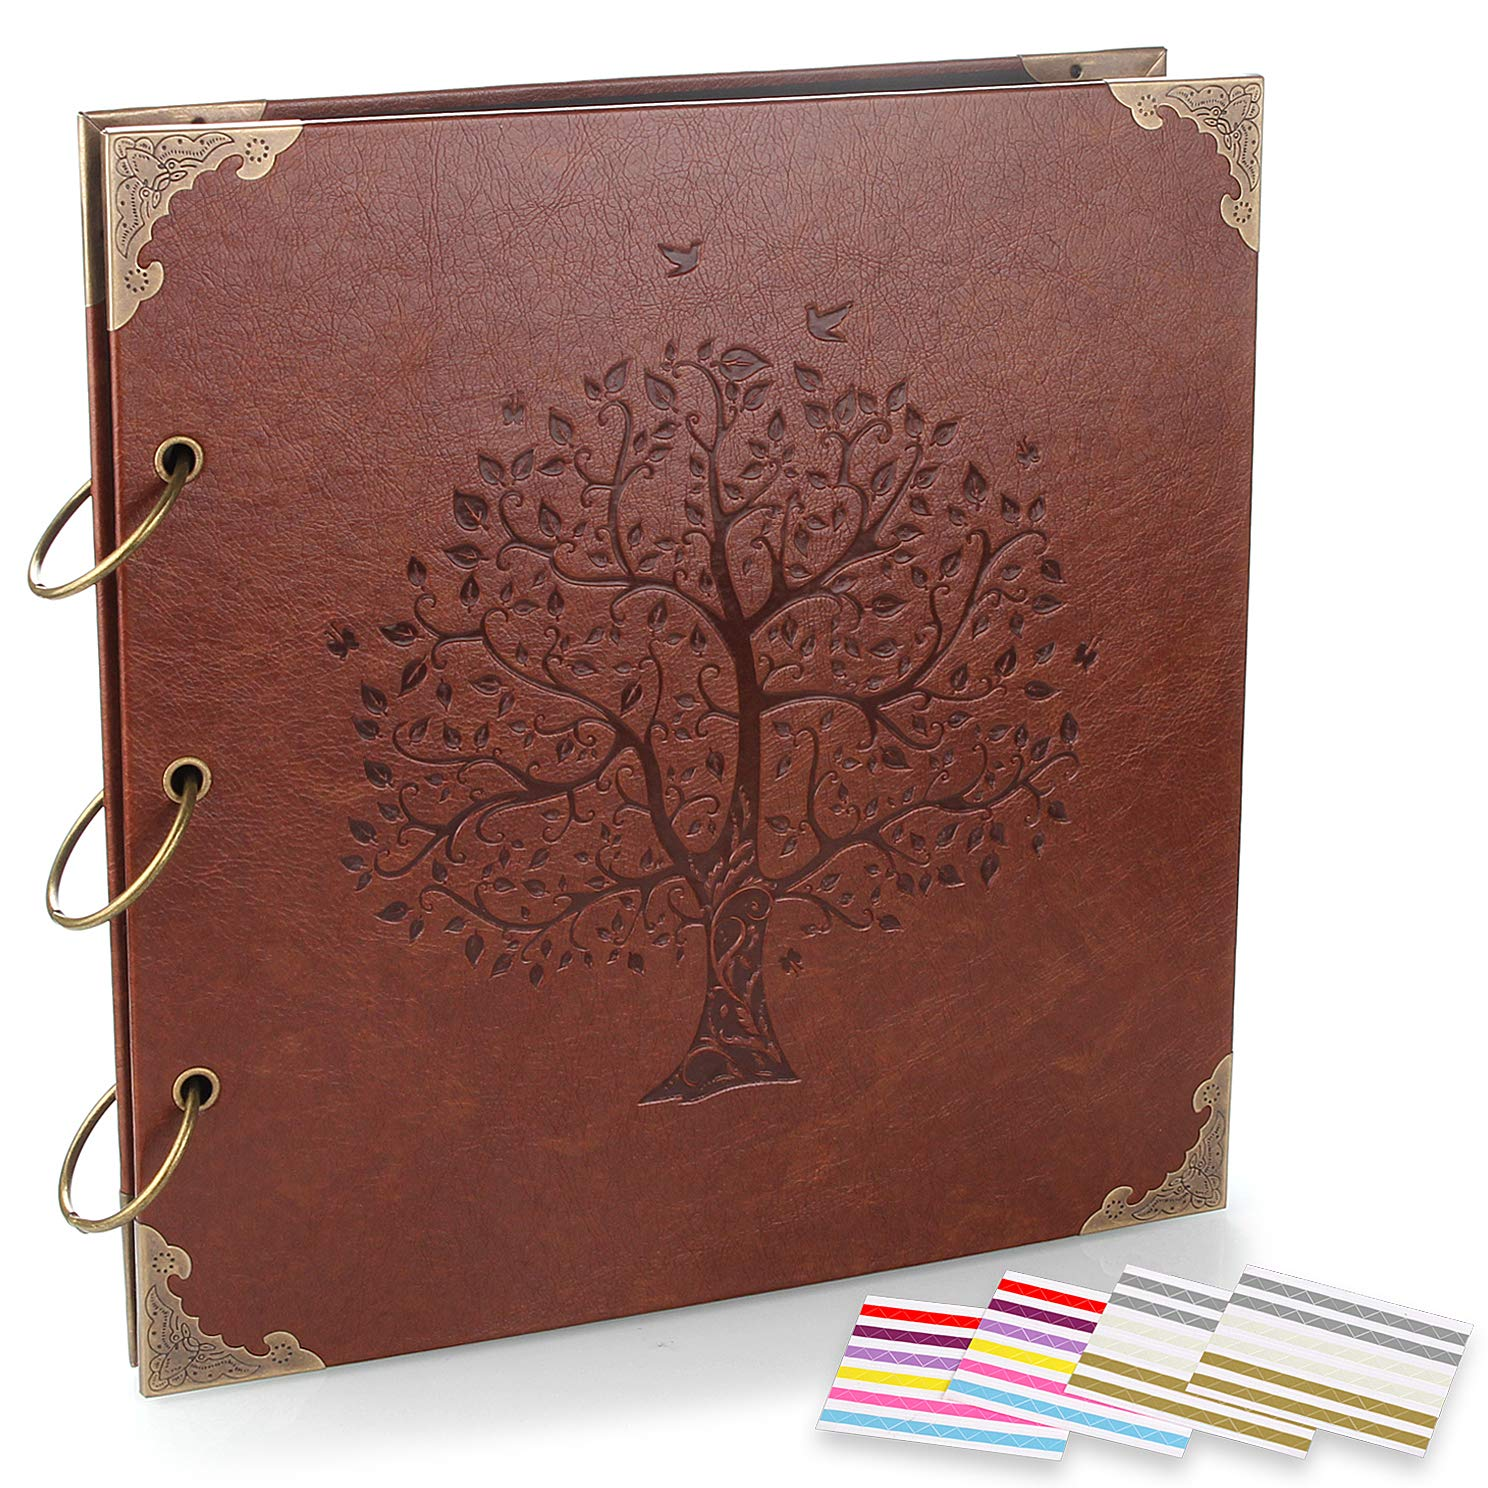 ADVcer Photo Album DIY Scrapbook (10x10 inch 50 Pages Double Sided), Vintage Leather Cover Three-Ring Binder Family Picture Booth with 9 Color 408pcs Self Adhesive Photos Corners for Memory Keep, Tree